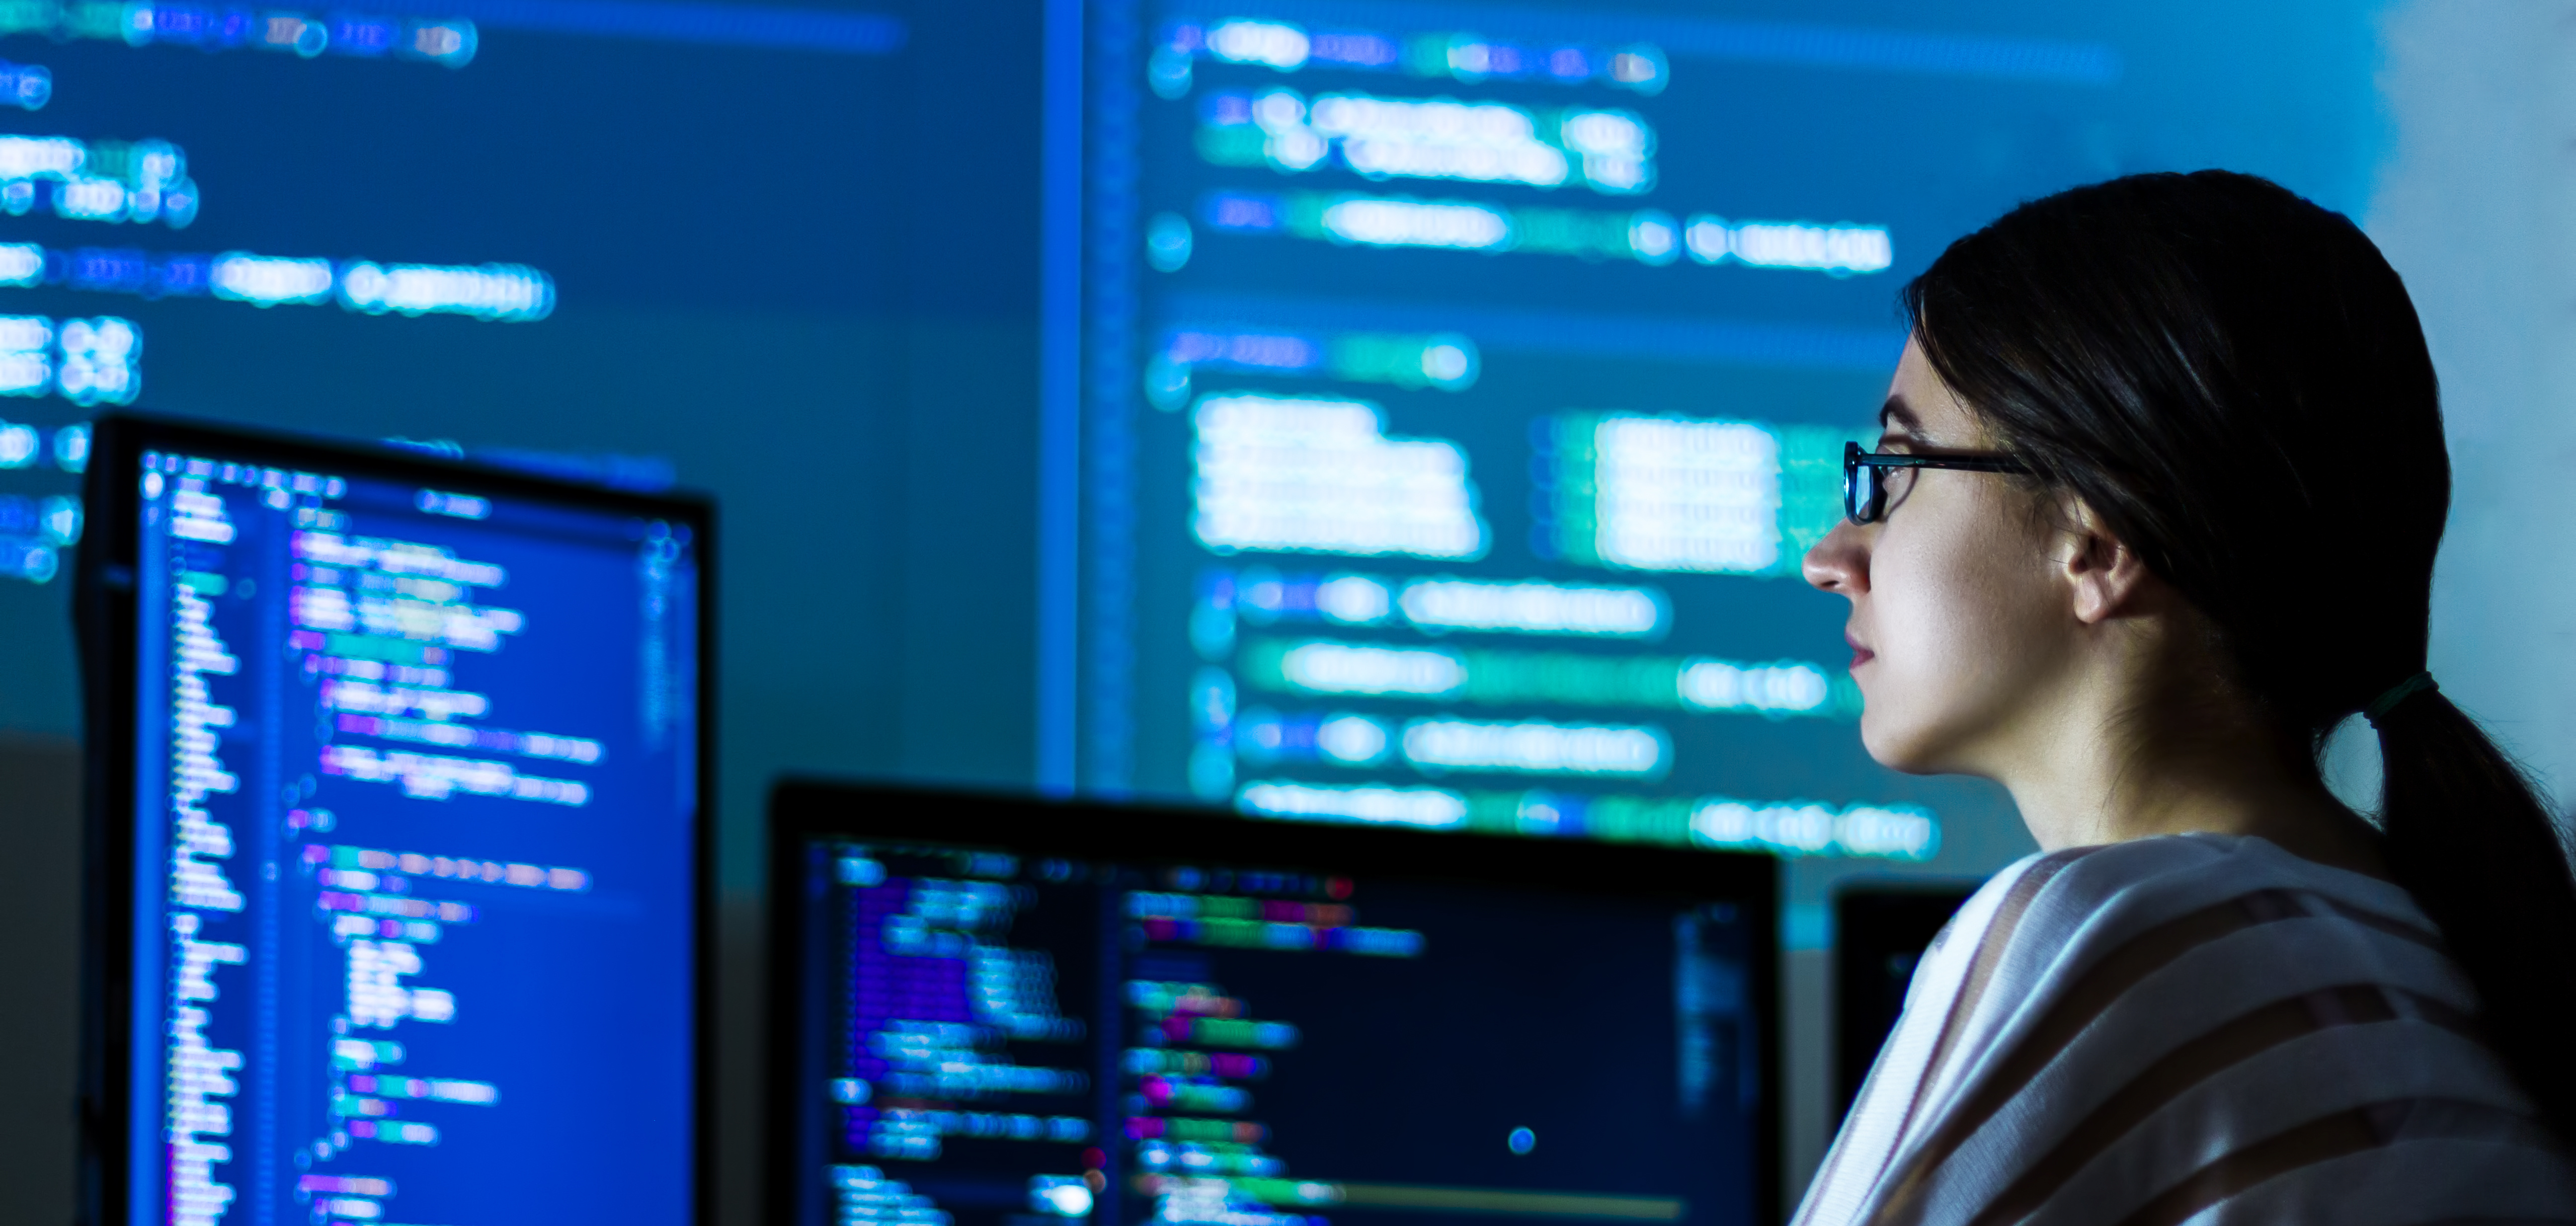 A girl with glasses in front of many computer screens.